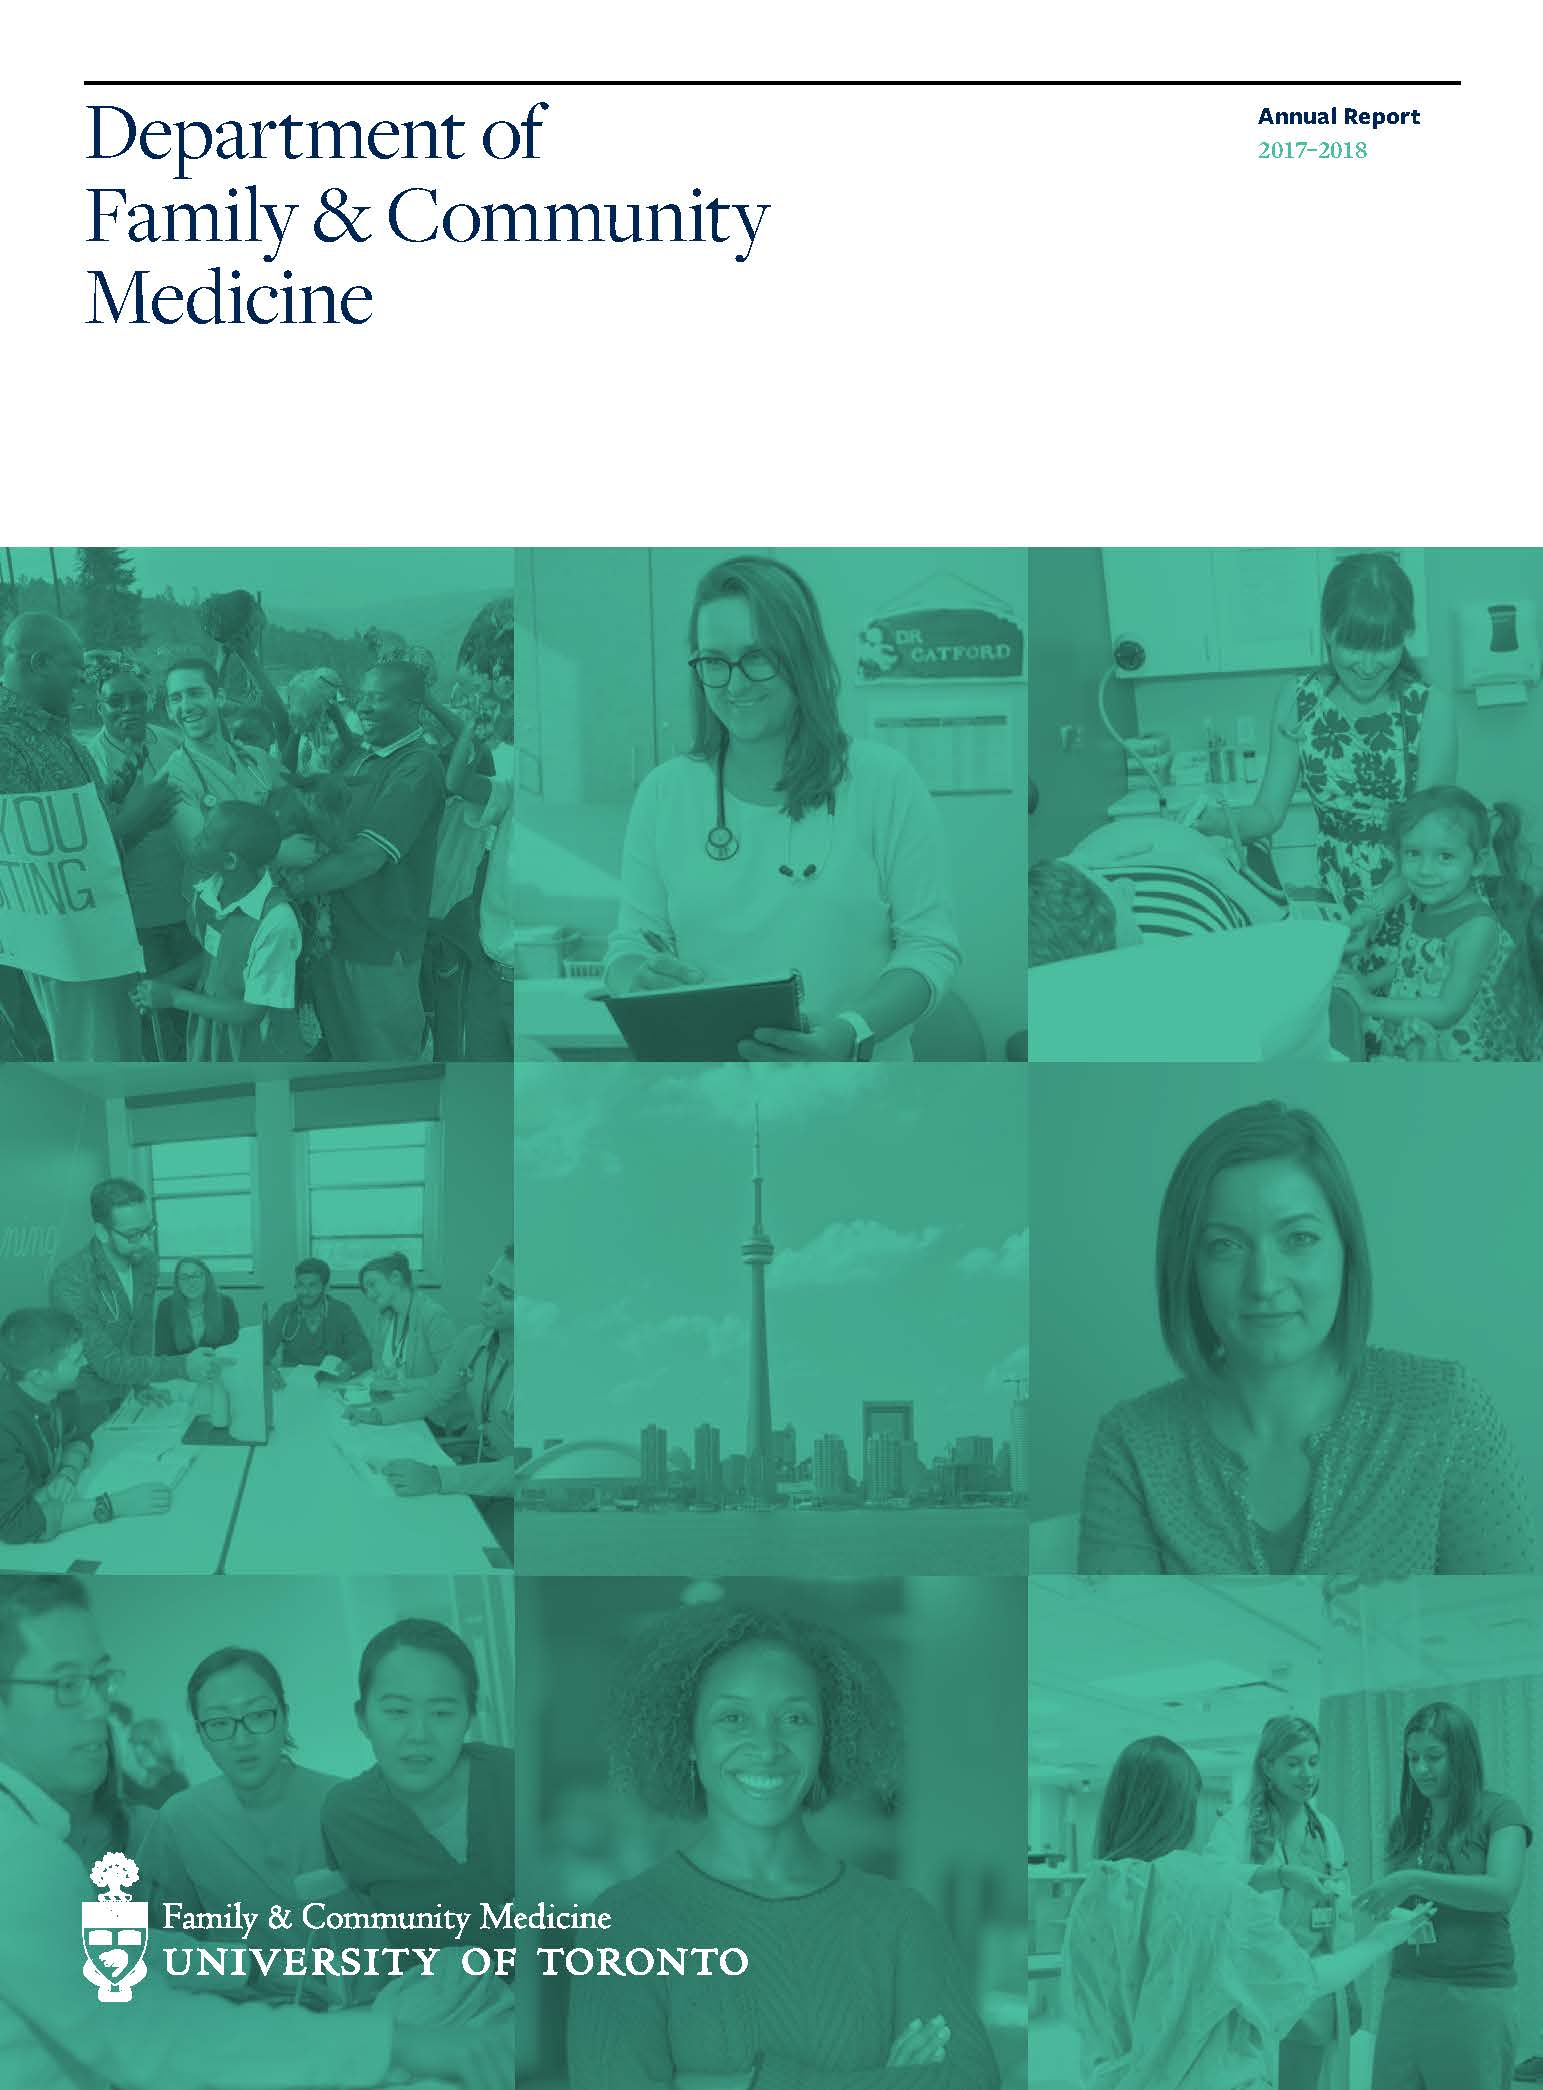 DFCM Annual Report 2017-2018 Cover Page